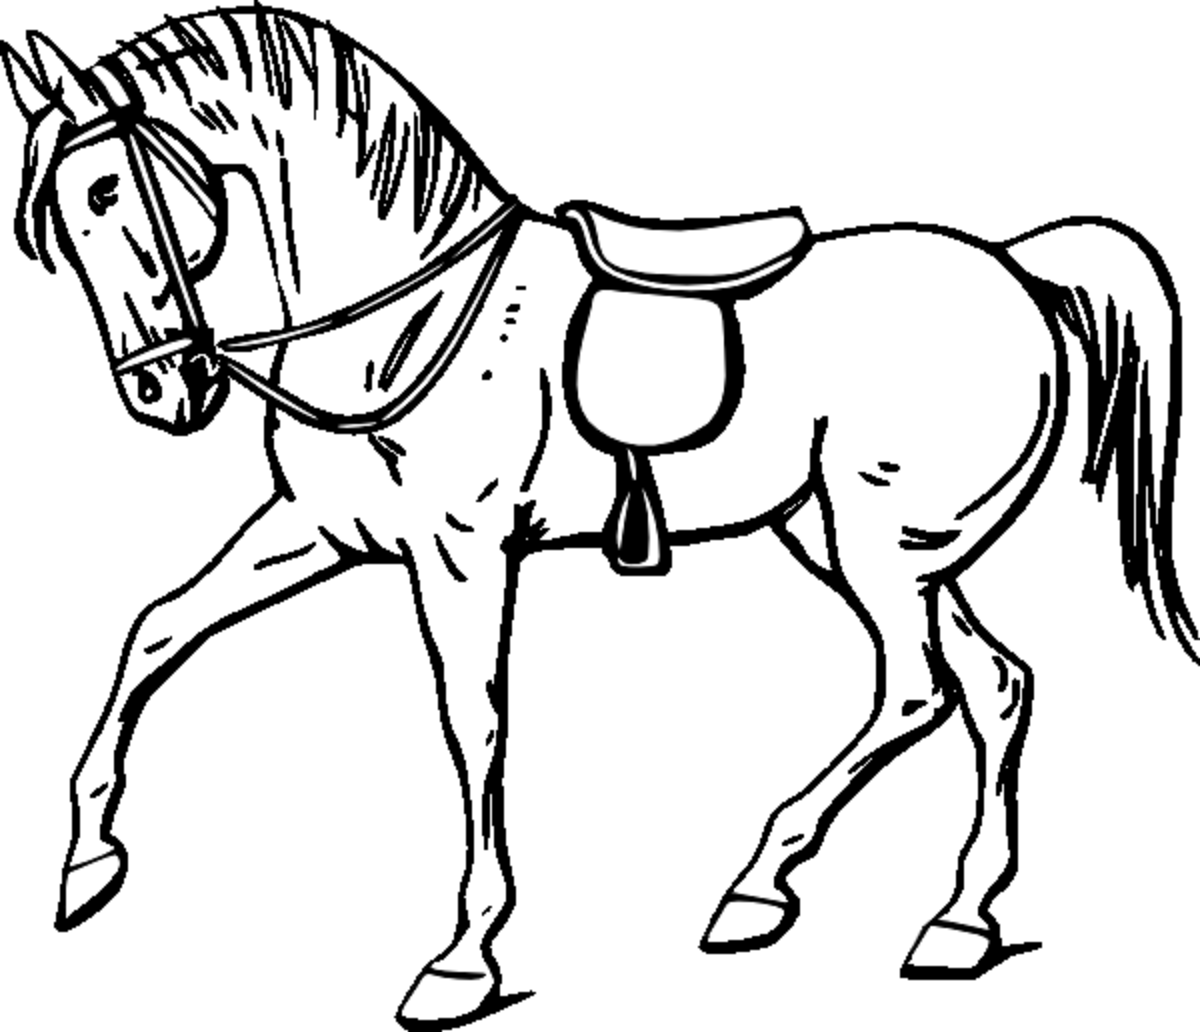 coloring pages of horses for kids | Colour Drawing Free HD Wallpapers: Horse For Kids Coloring ...